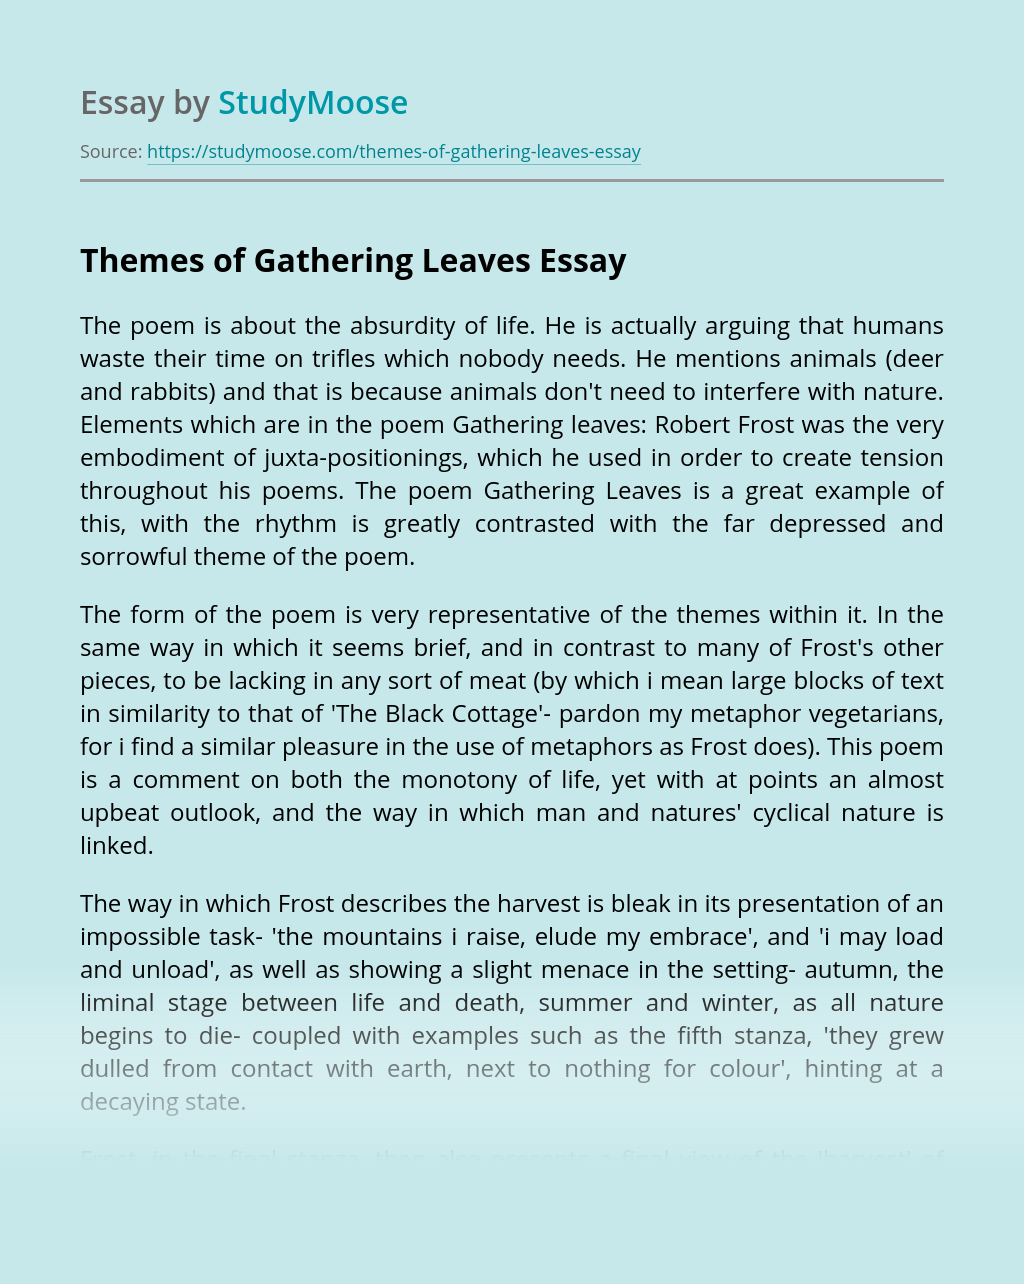 Themes of Gathering Leaves